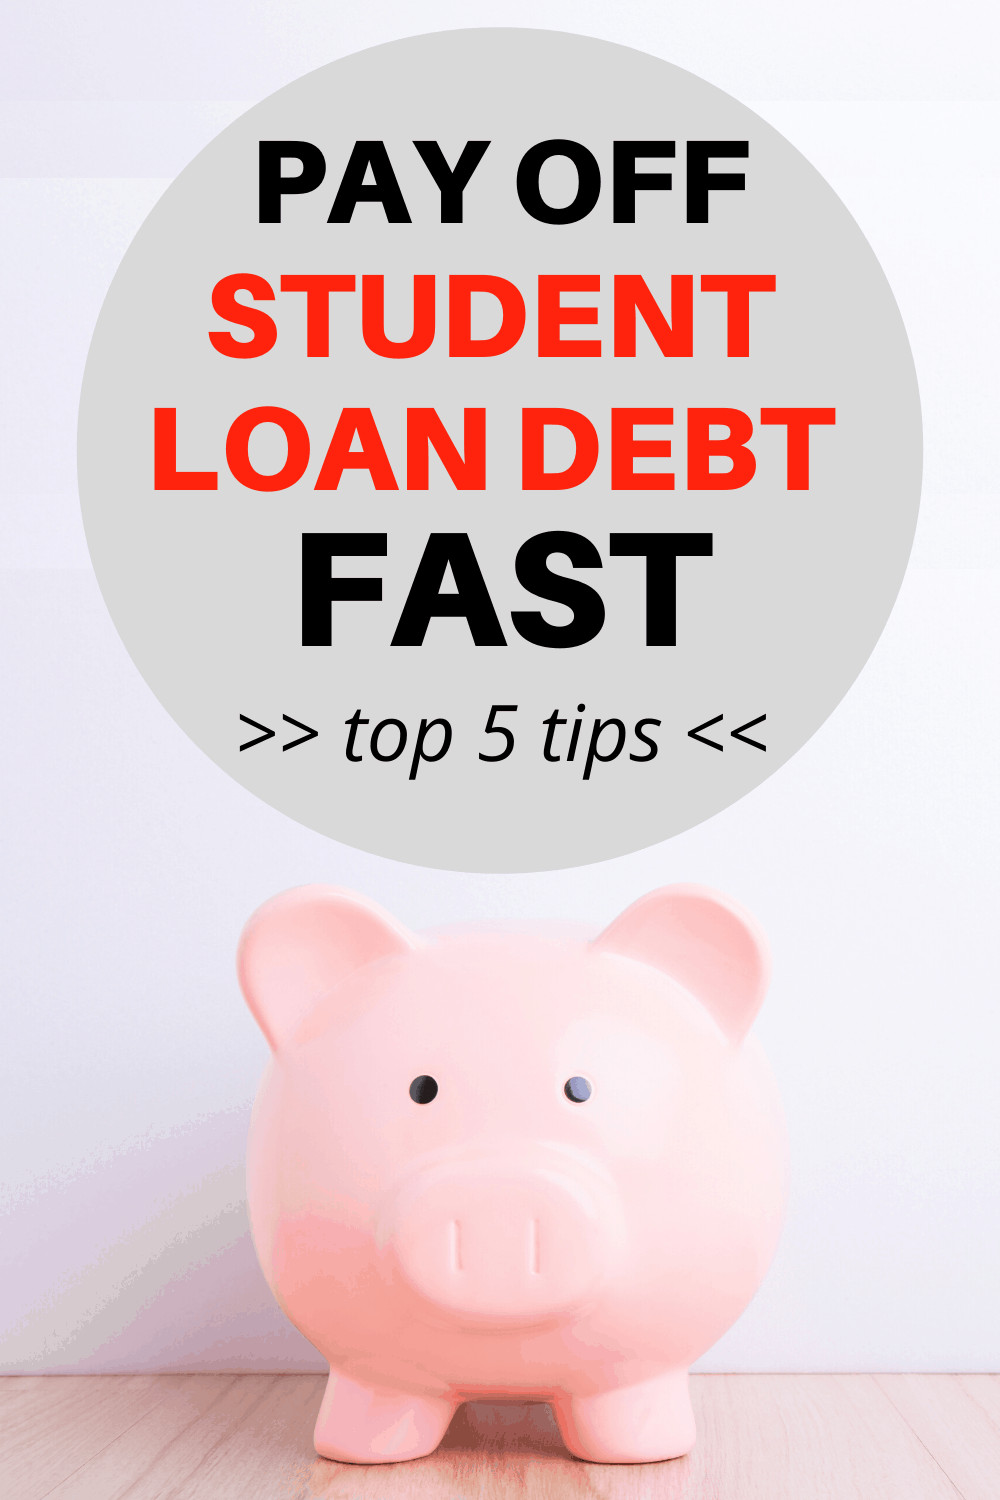 5 Smart Tips on How to Pay Off Student Loan Debt Fast